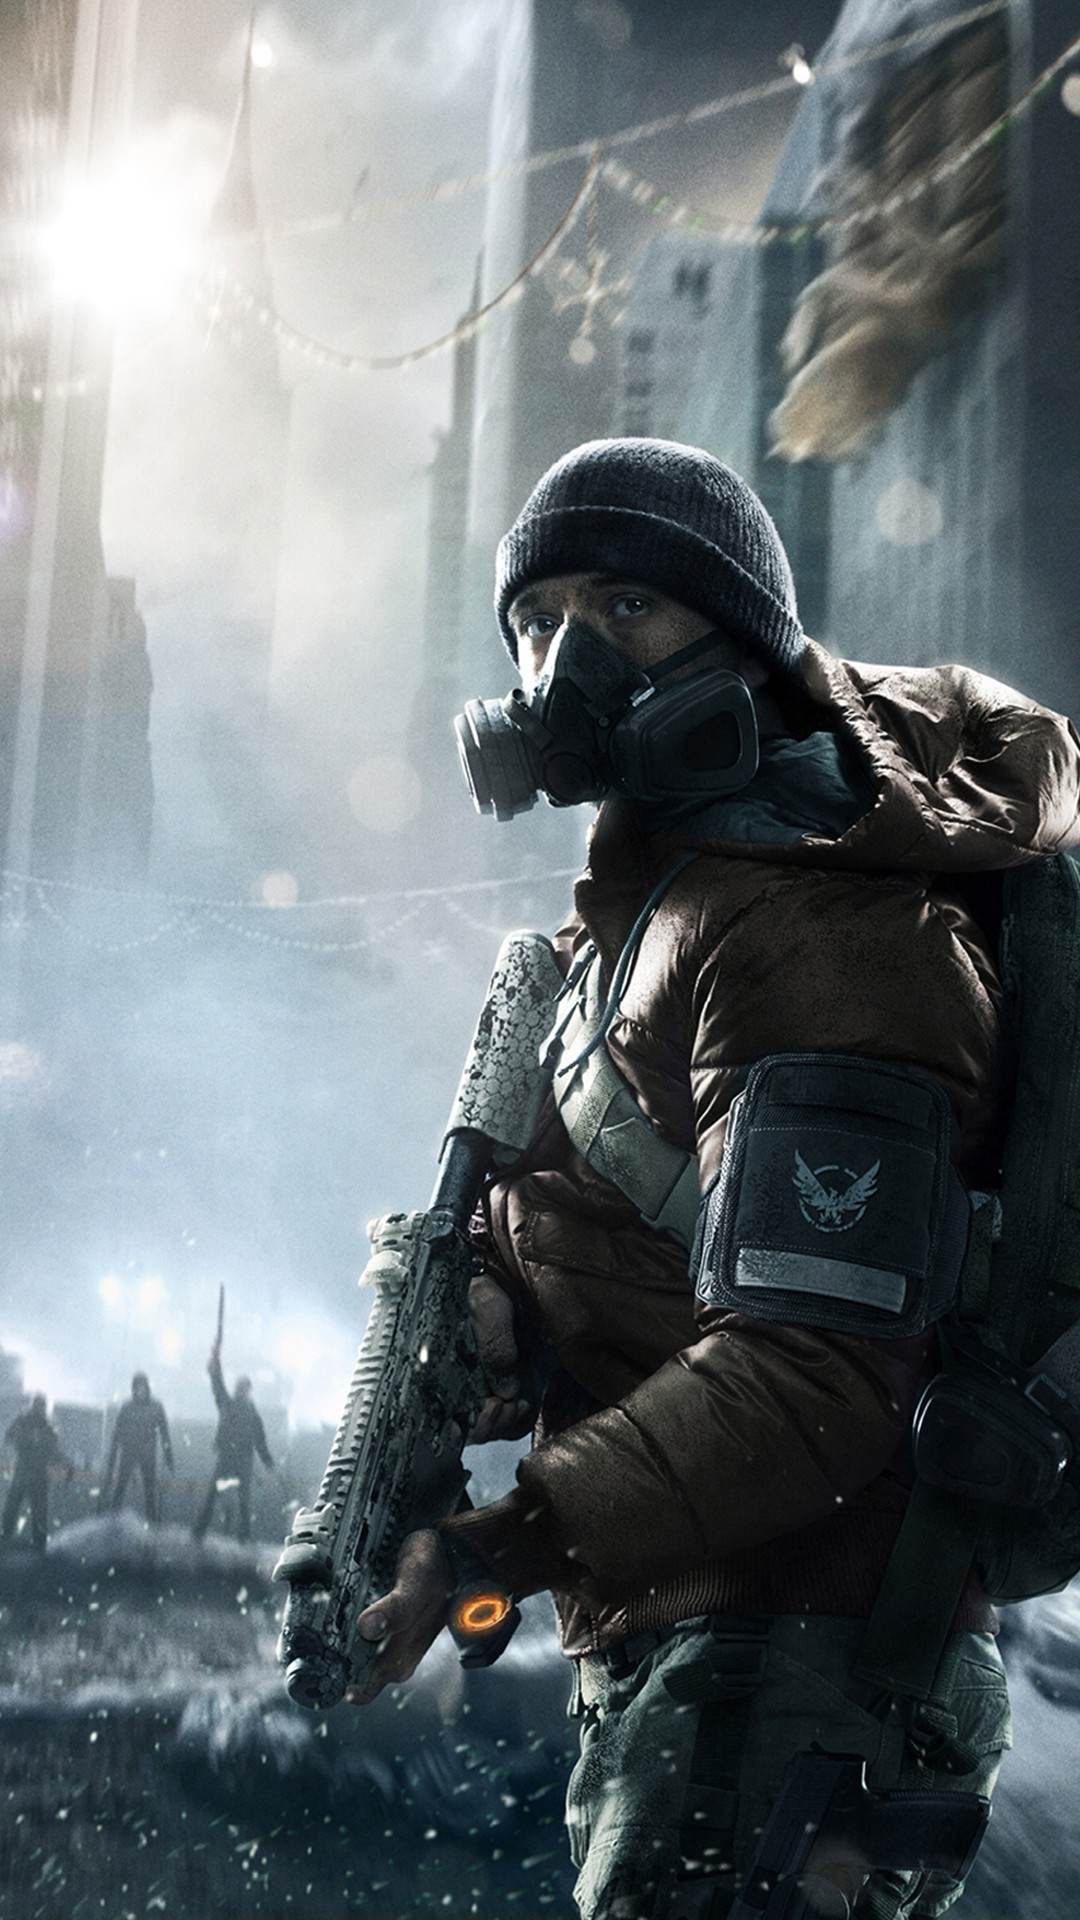 Ultra Hd Wallpapers 8k Girl The Division 4k Wallpaper 76 Images